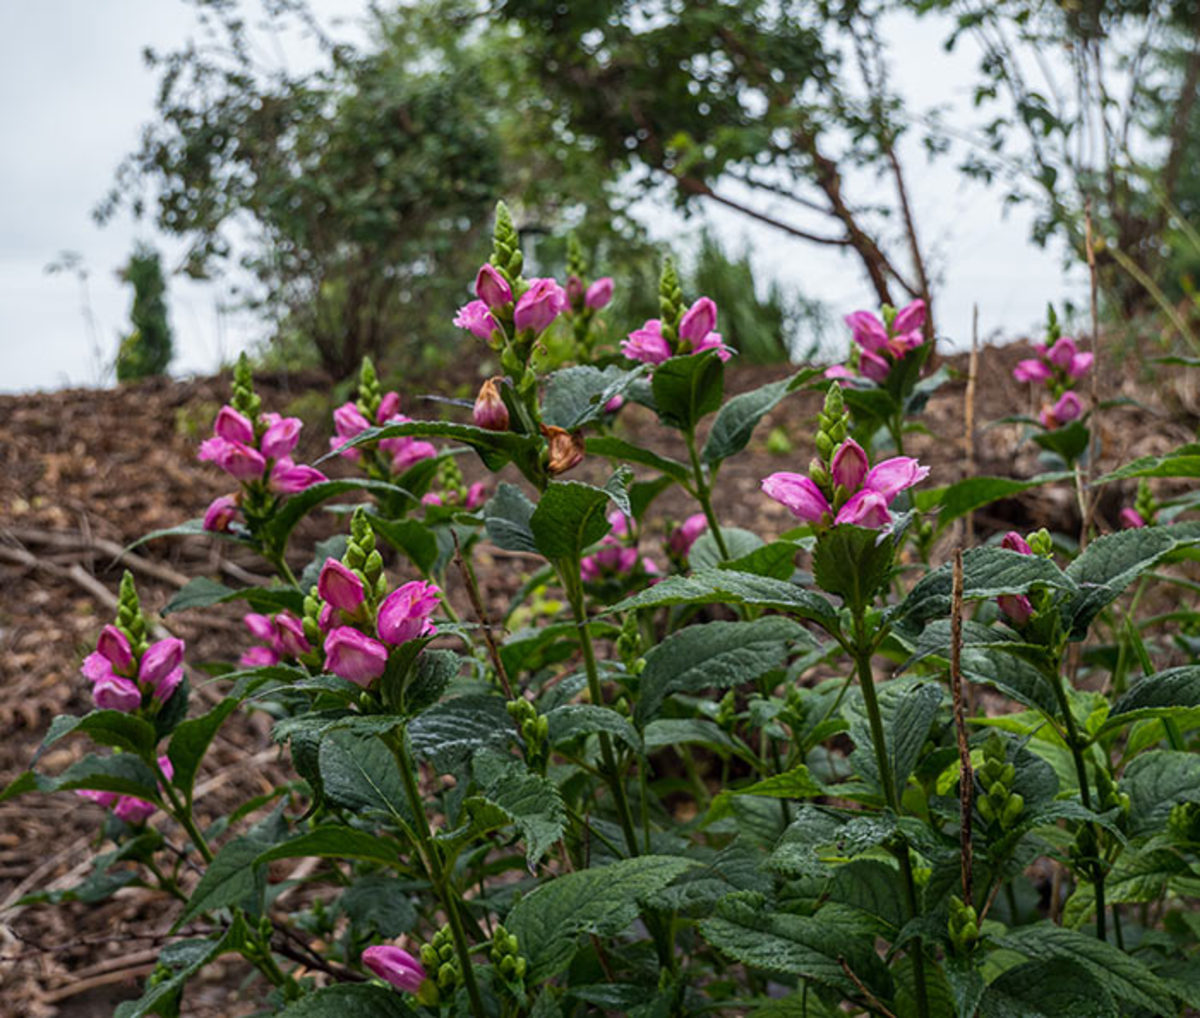 Turtlehead (here, the cultivar Chelone lyonii Tiny Tortuga) delays blooming until autumn.